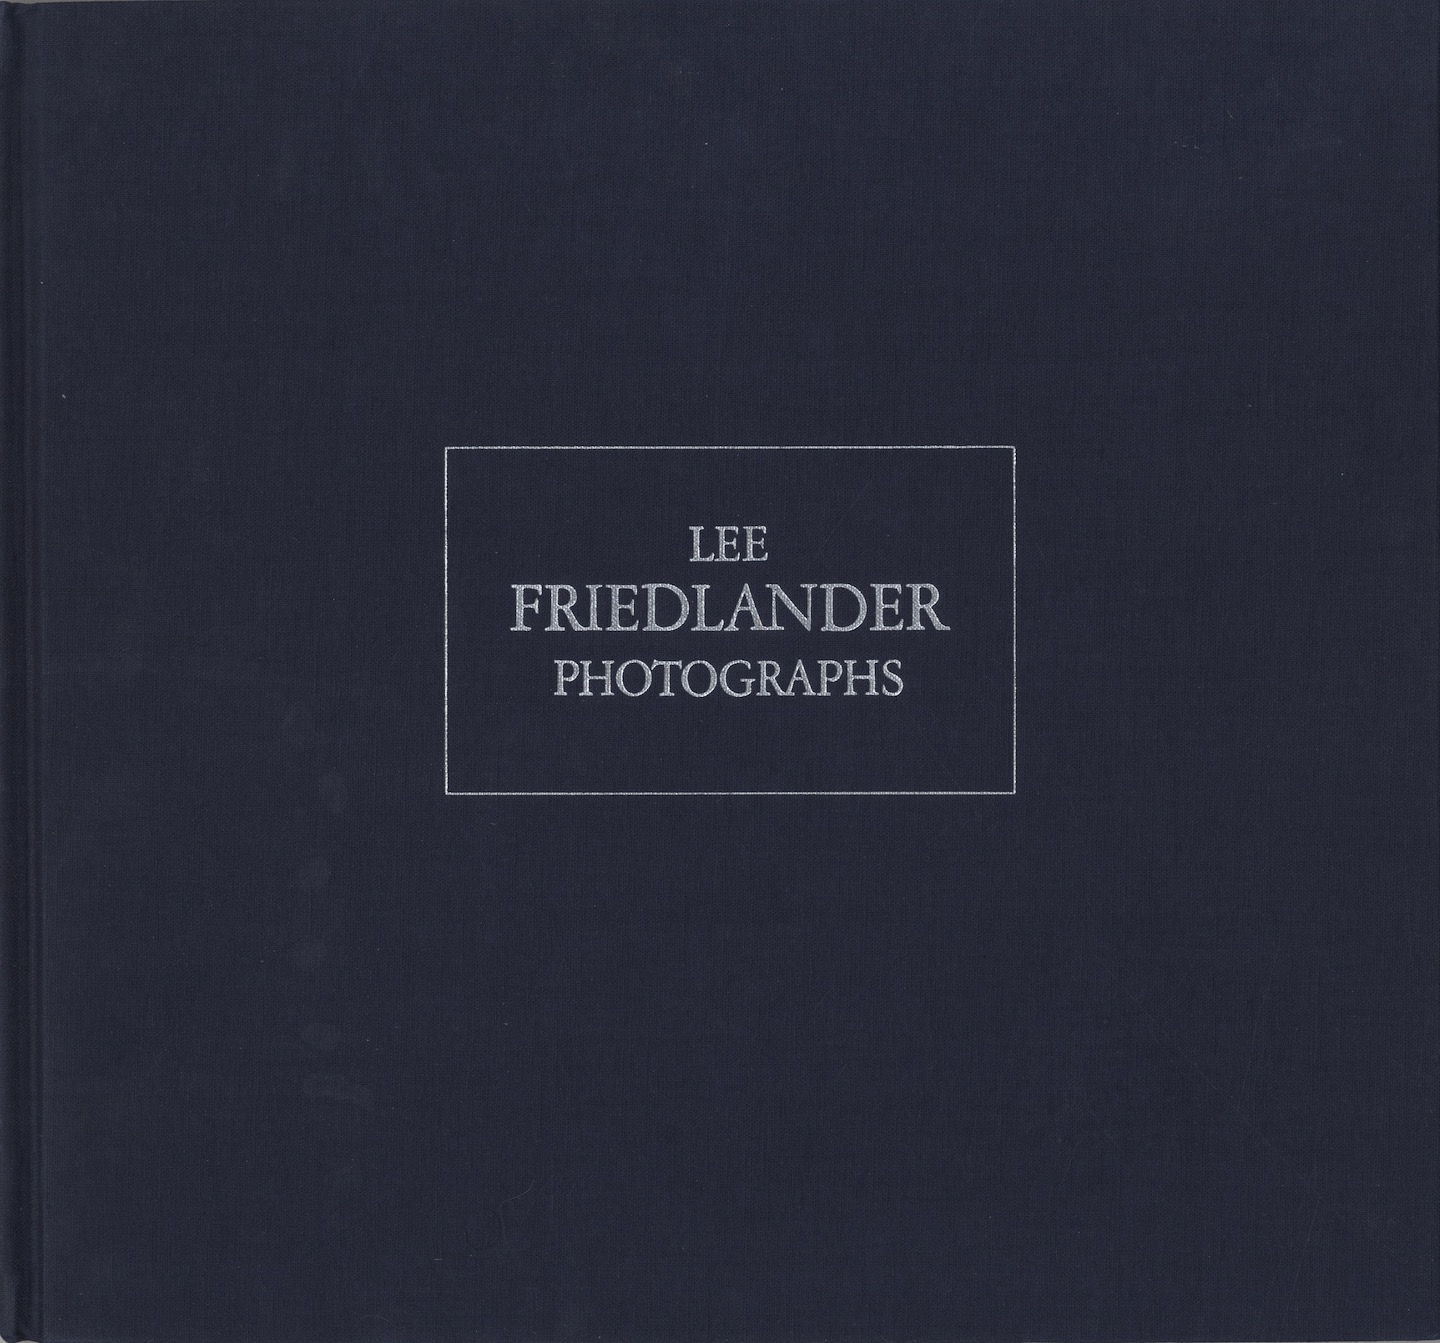 Lee Friedlander: Photographs (Haywire Press) [SIGNED]